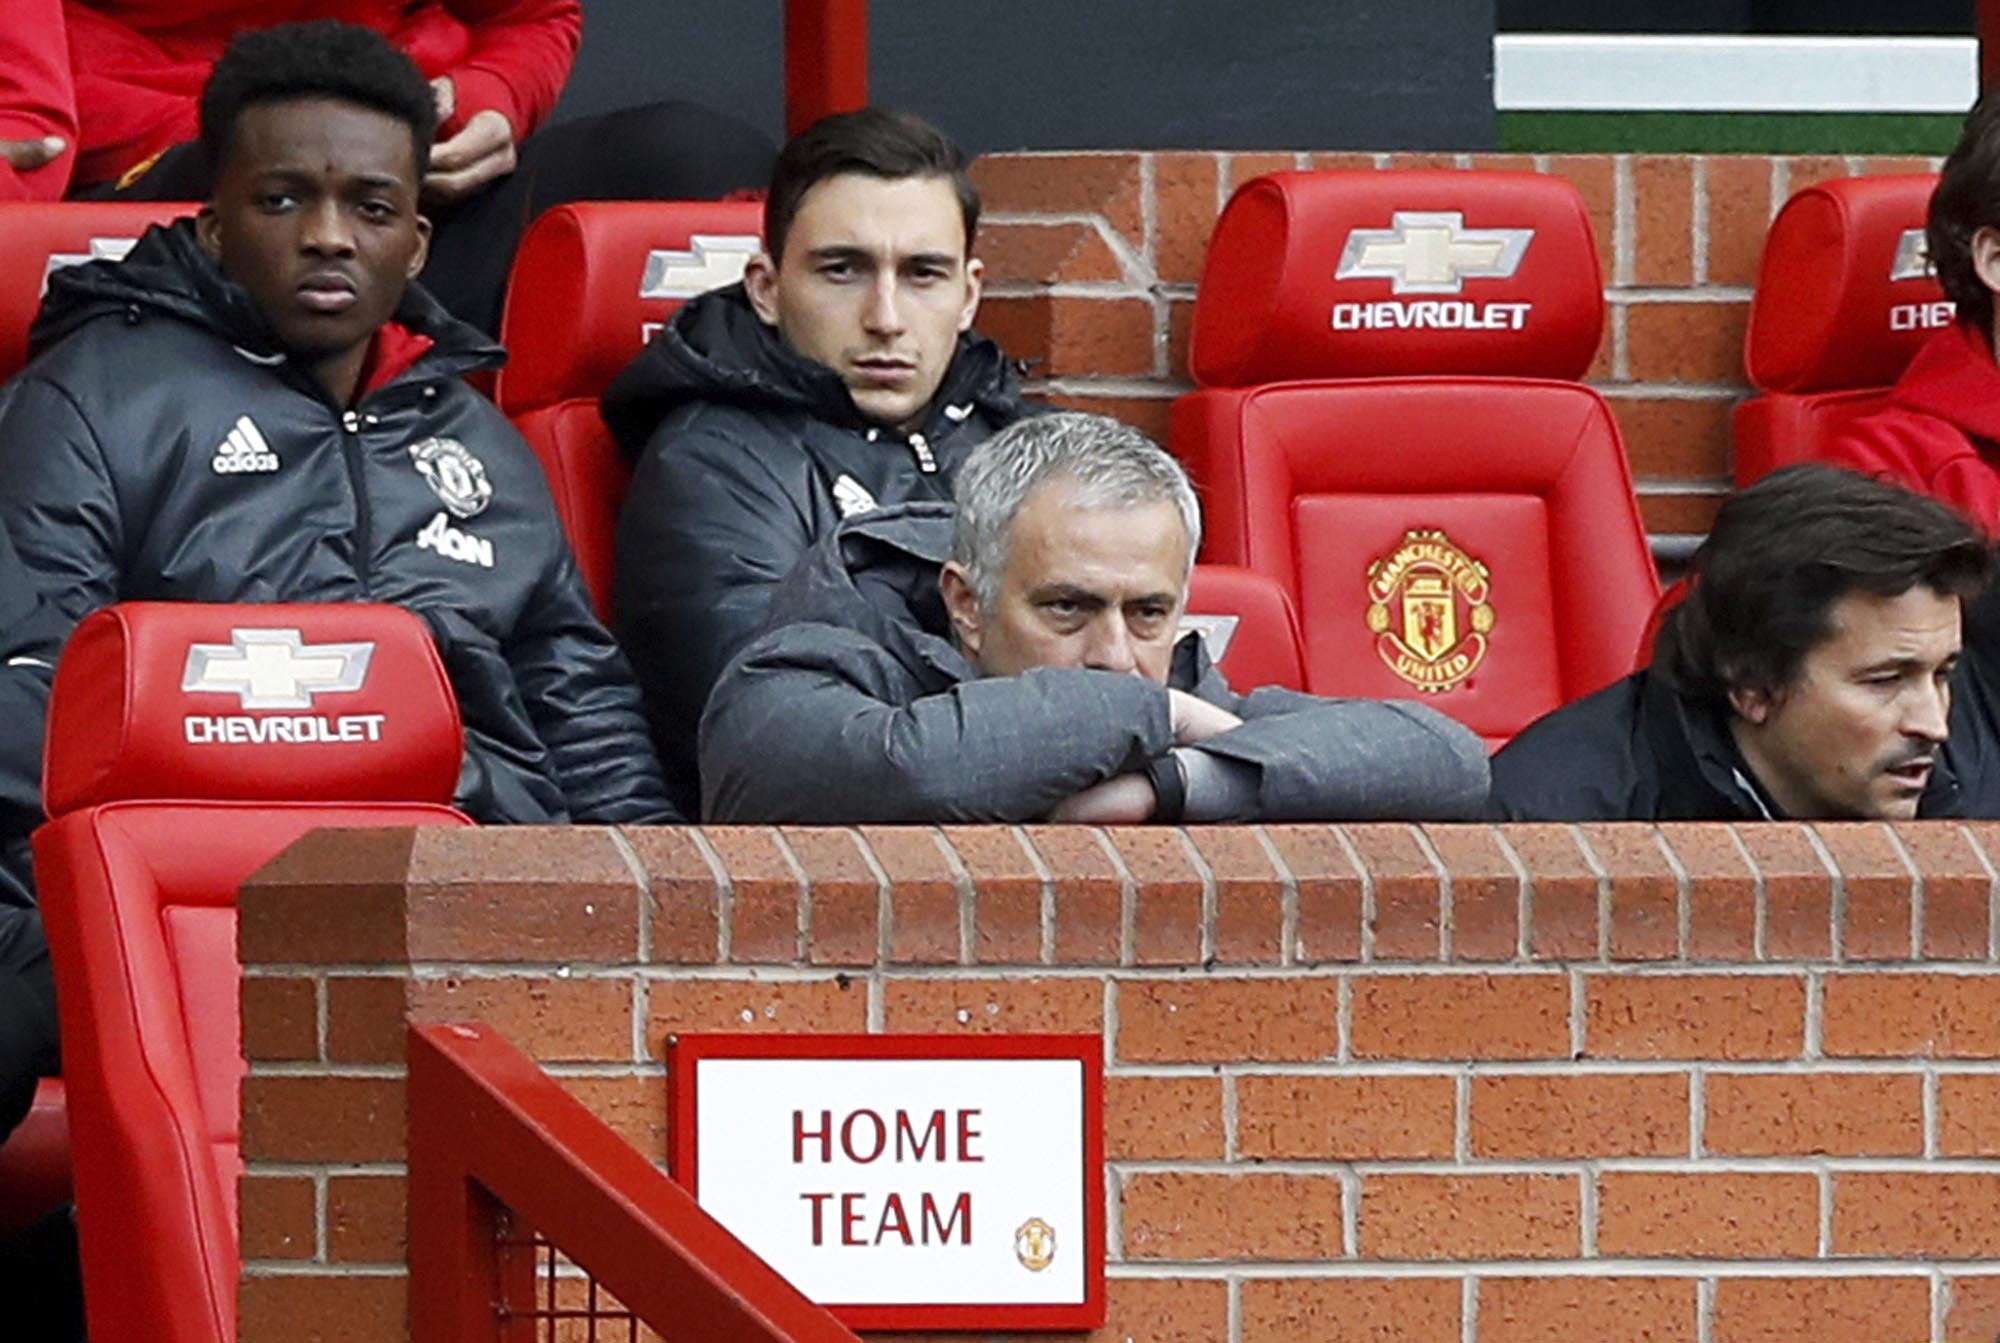 Manchester United manager Jose Mourinho, centre, looks out during the match against West Bromwich Albion during the English Premier League soccer match at Old Trafford in Manchester, England, on Saturday April 1, 2017. AP